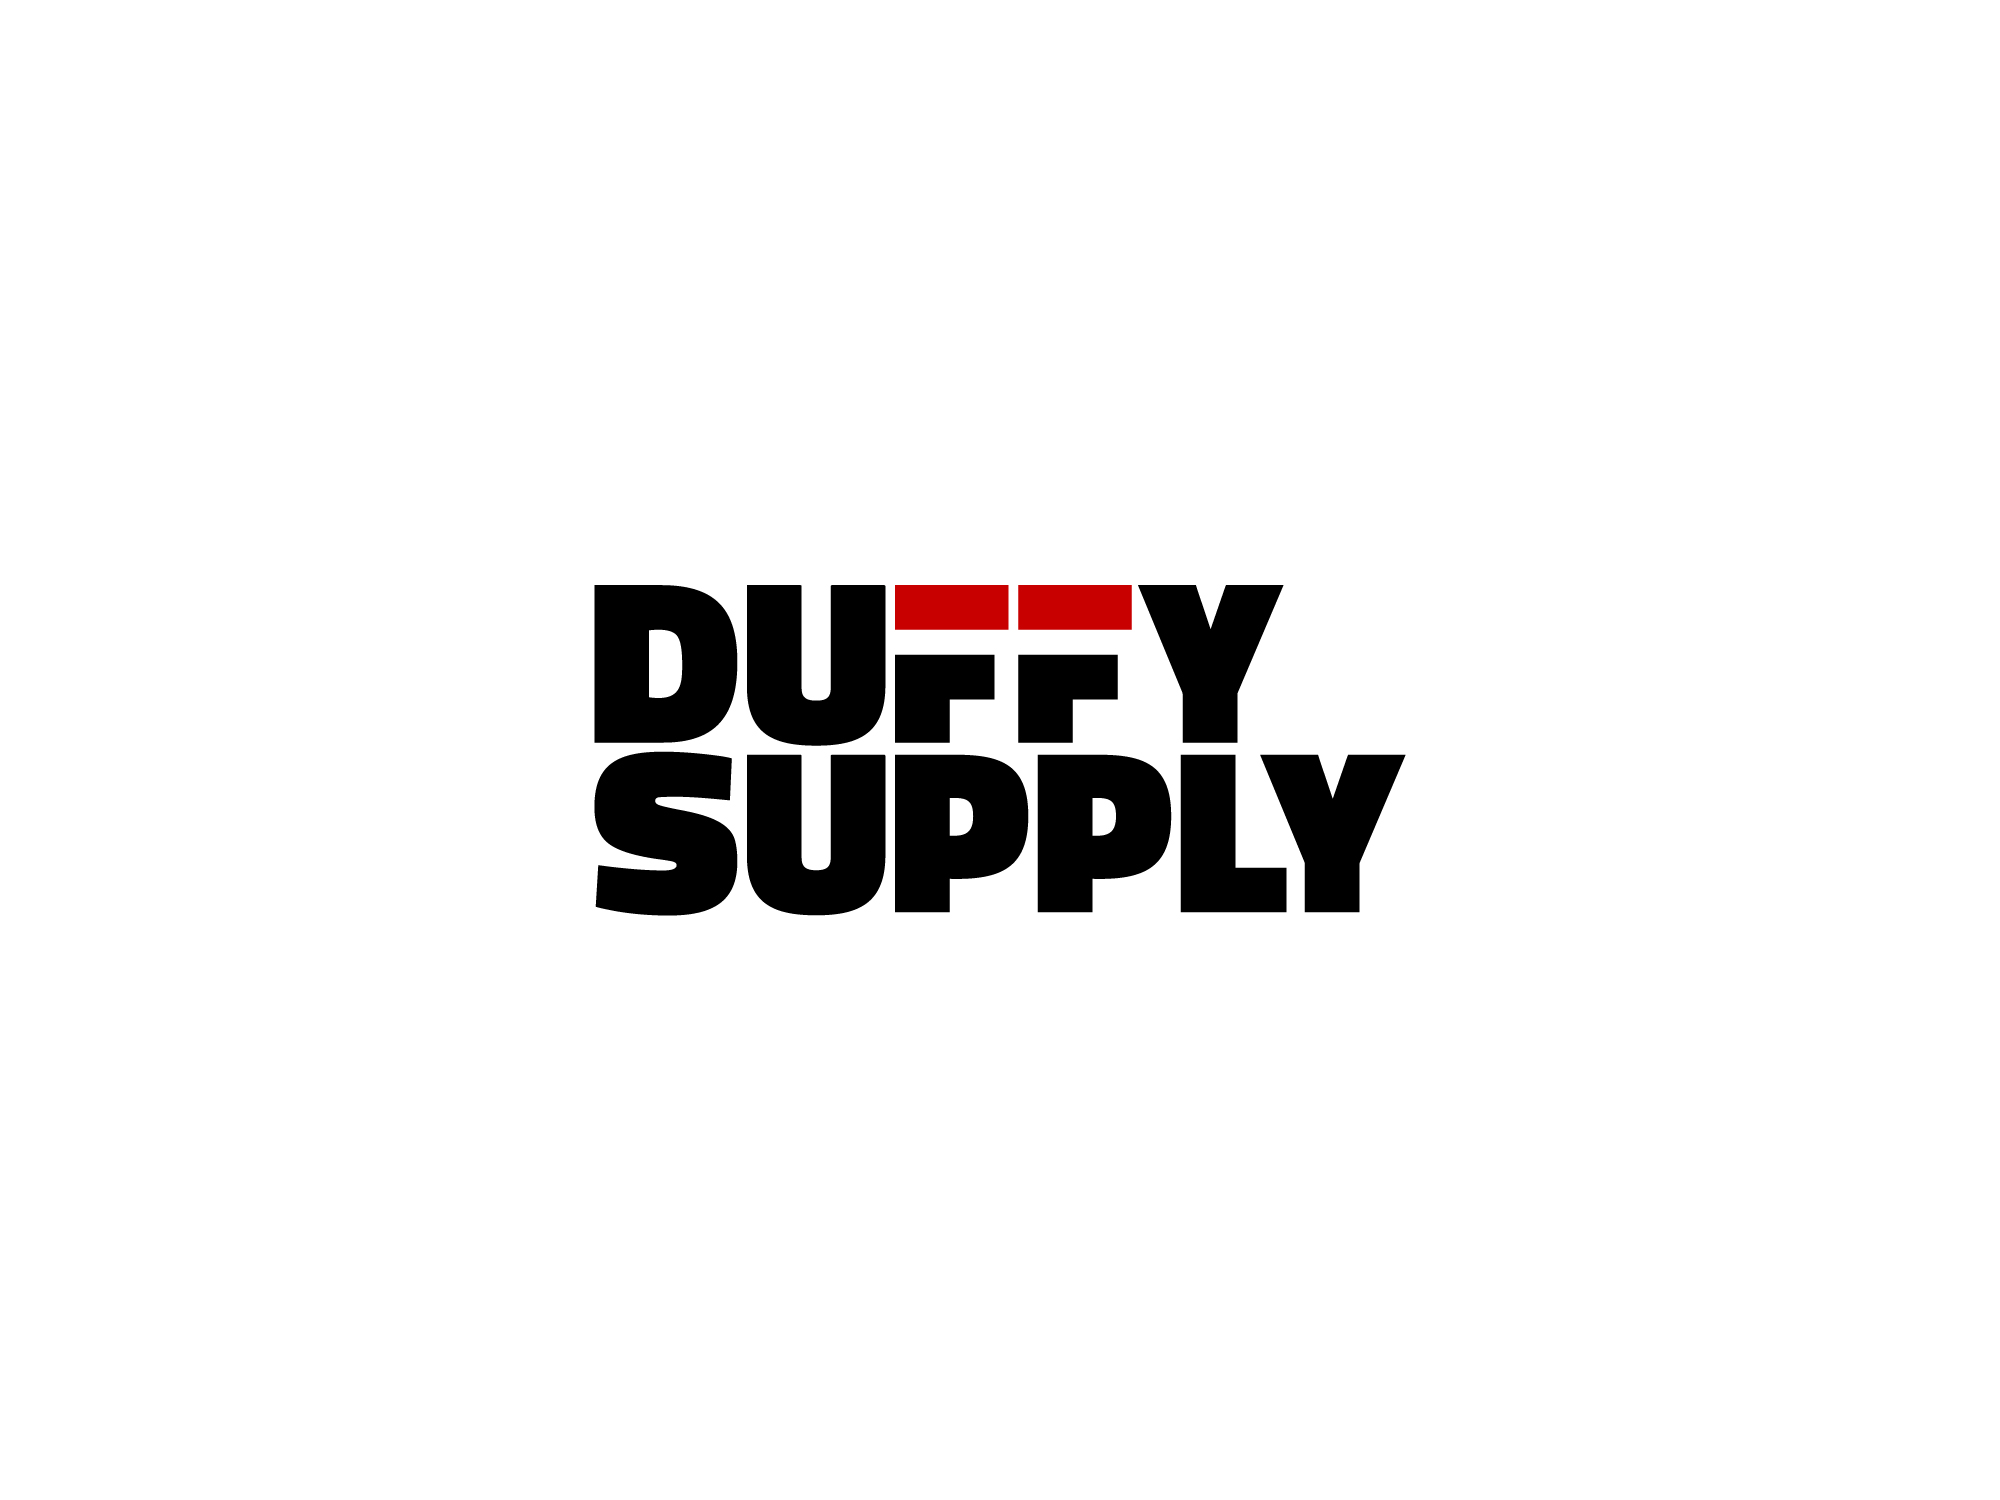 Duffy Supply